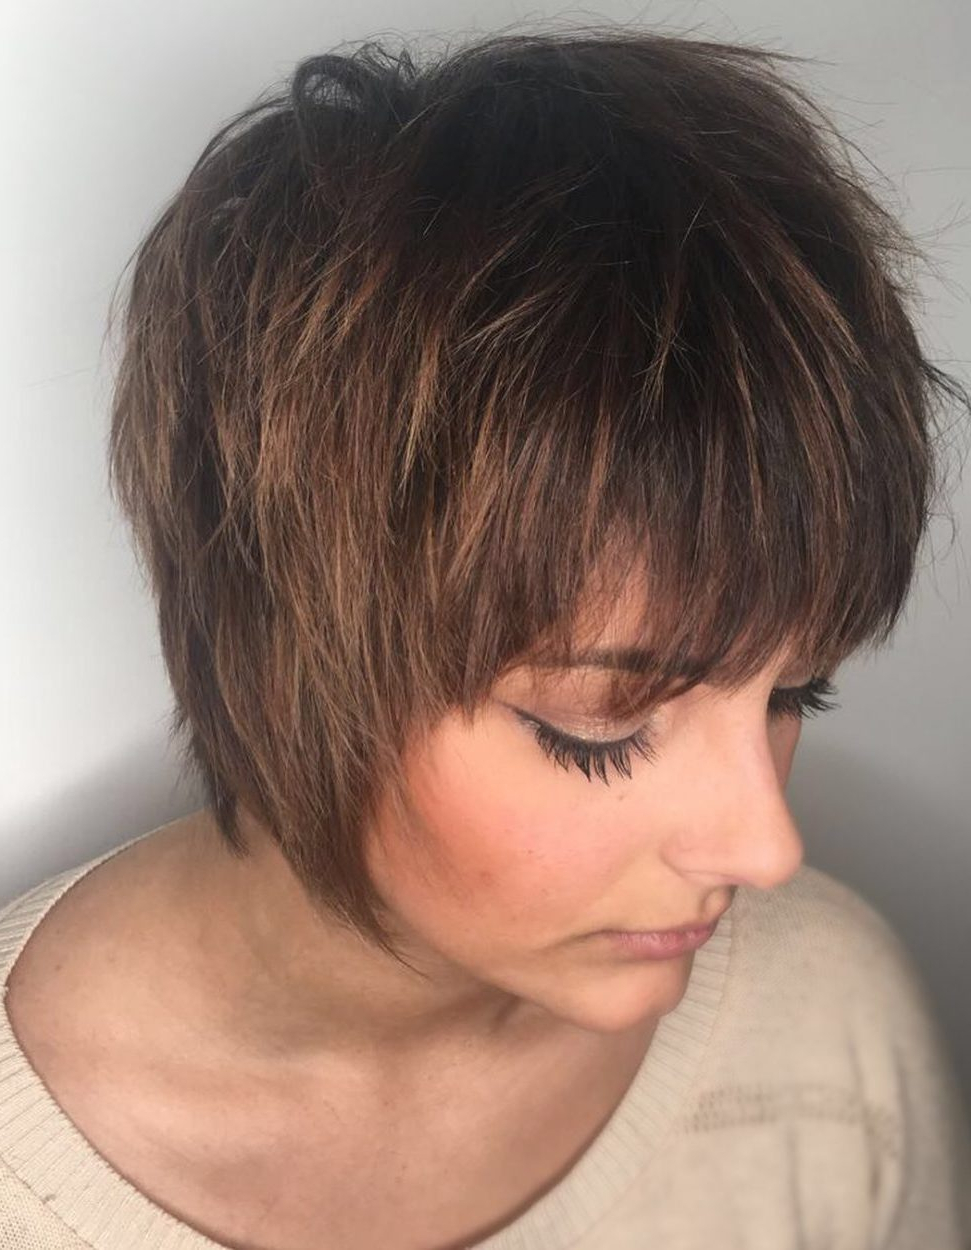 Top 25 Short Shag Haircuts Right Now – Short Bob Cuts Inside Very Short Shaggy Bob Hairstyles (View 4 of 20)